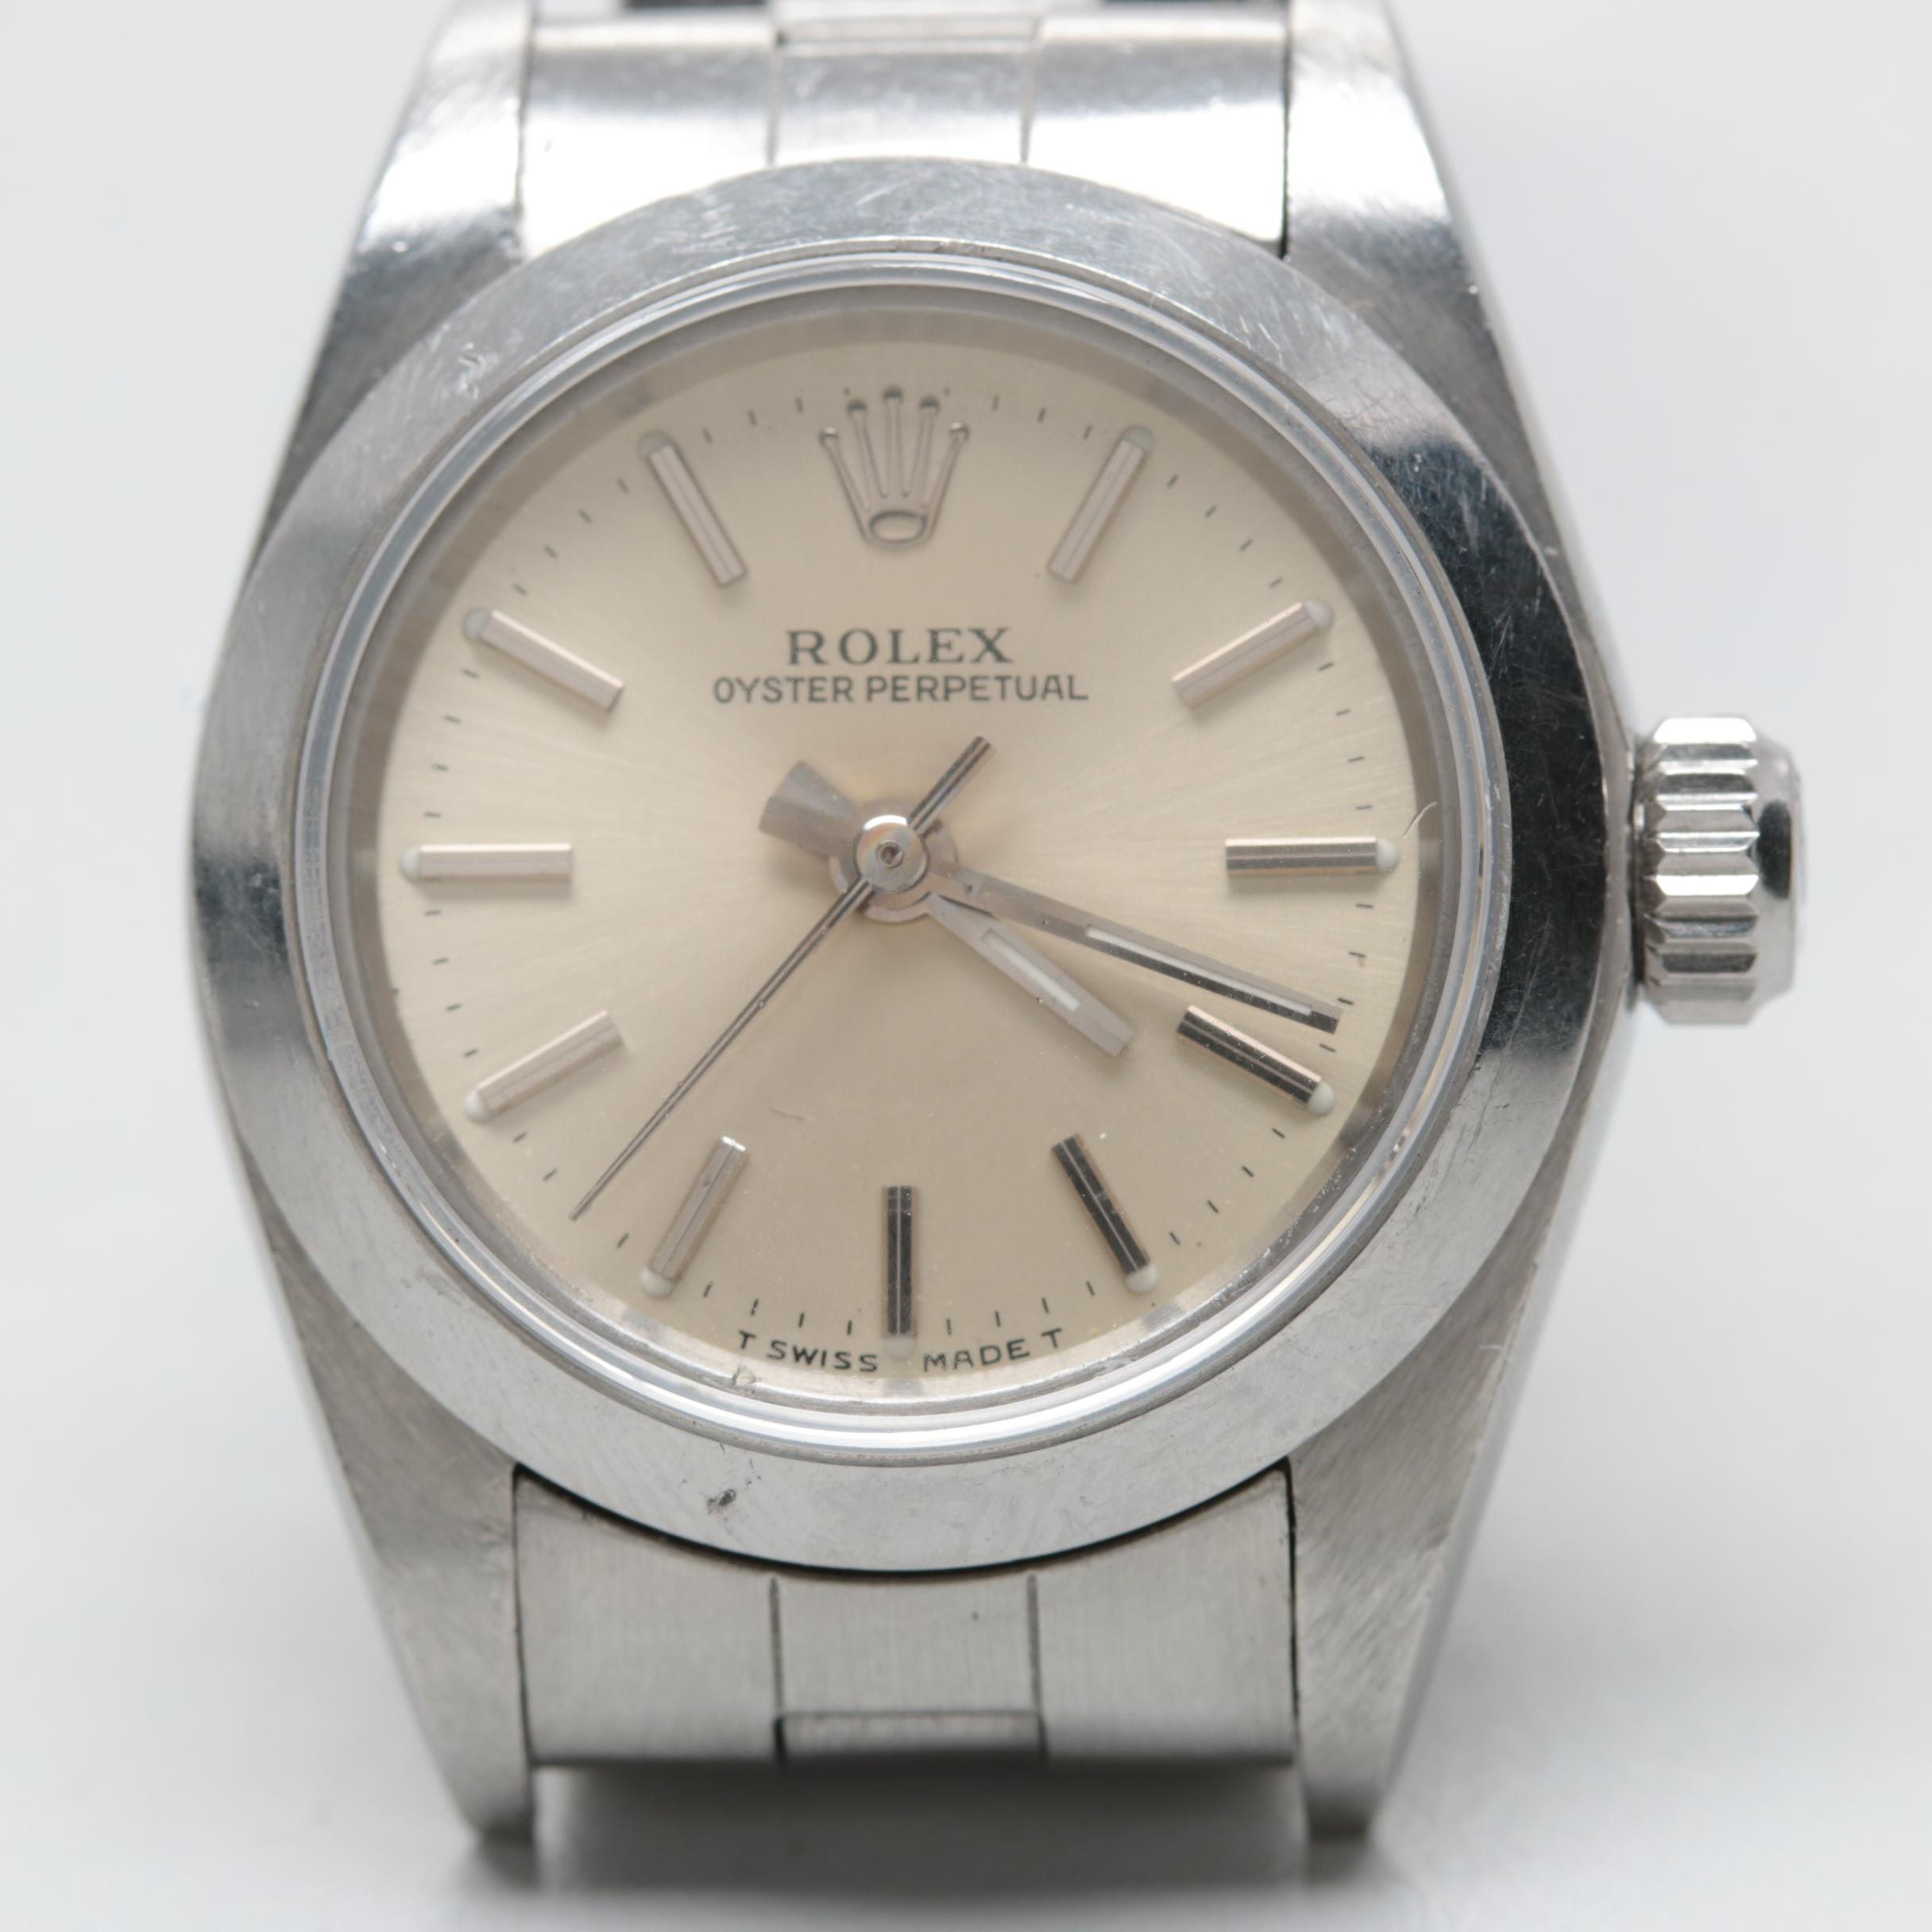 Rolex Oyster Perpetual Automatic Wristwatch 1995